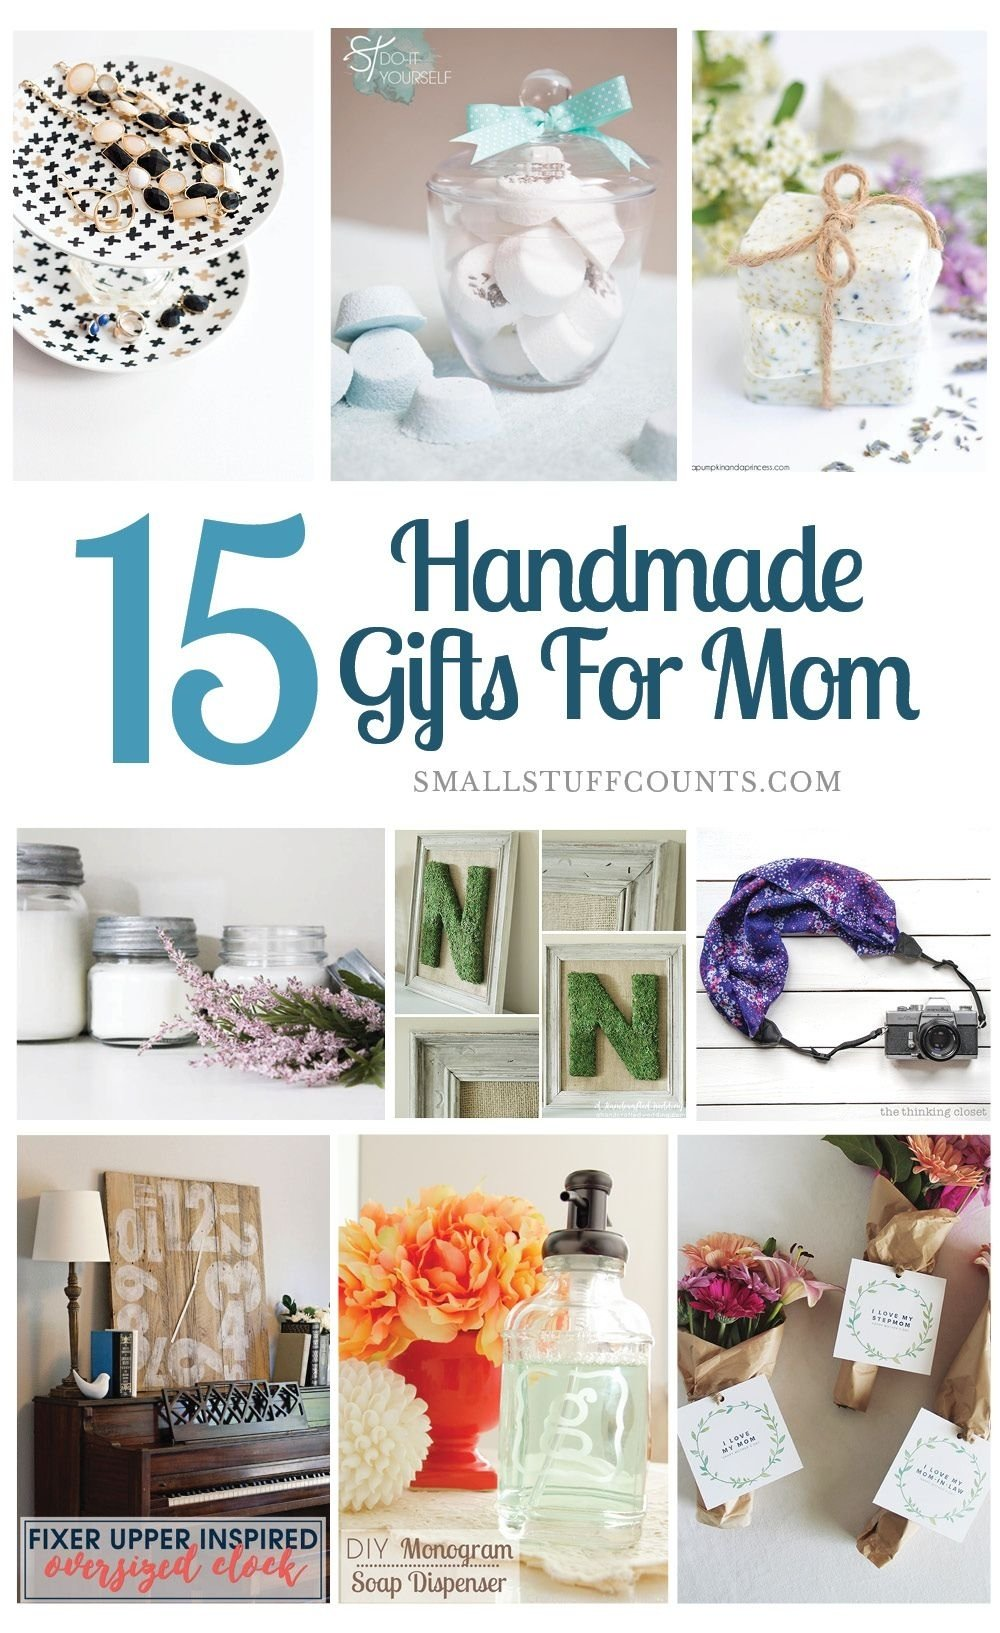 10 Famous Good Christmas Ideas For Mom beautiful diy gift ideas for mom gift 19 2020